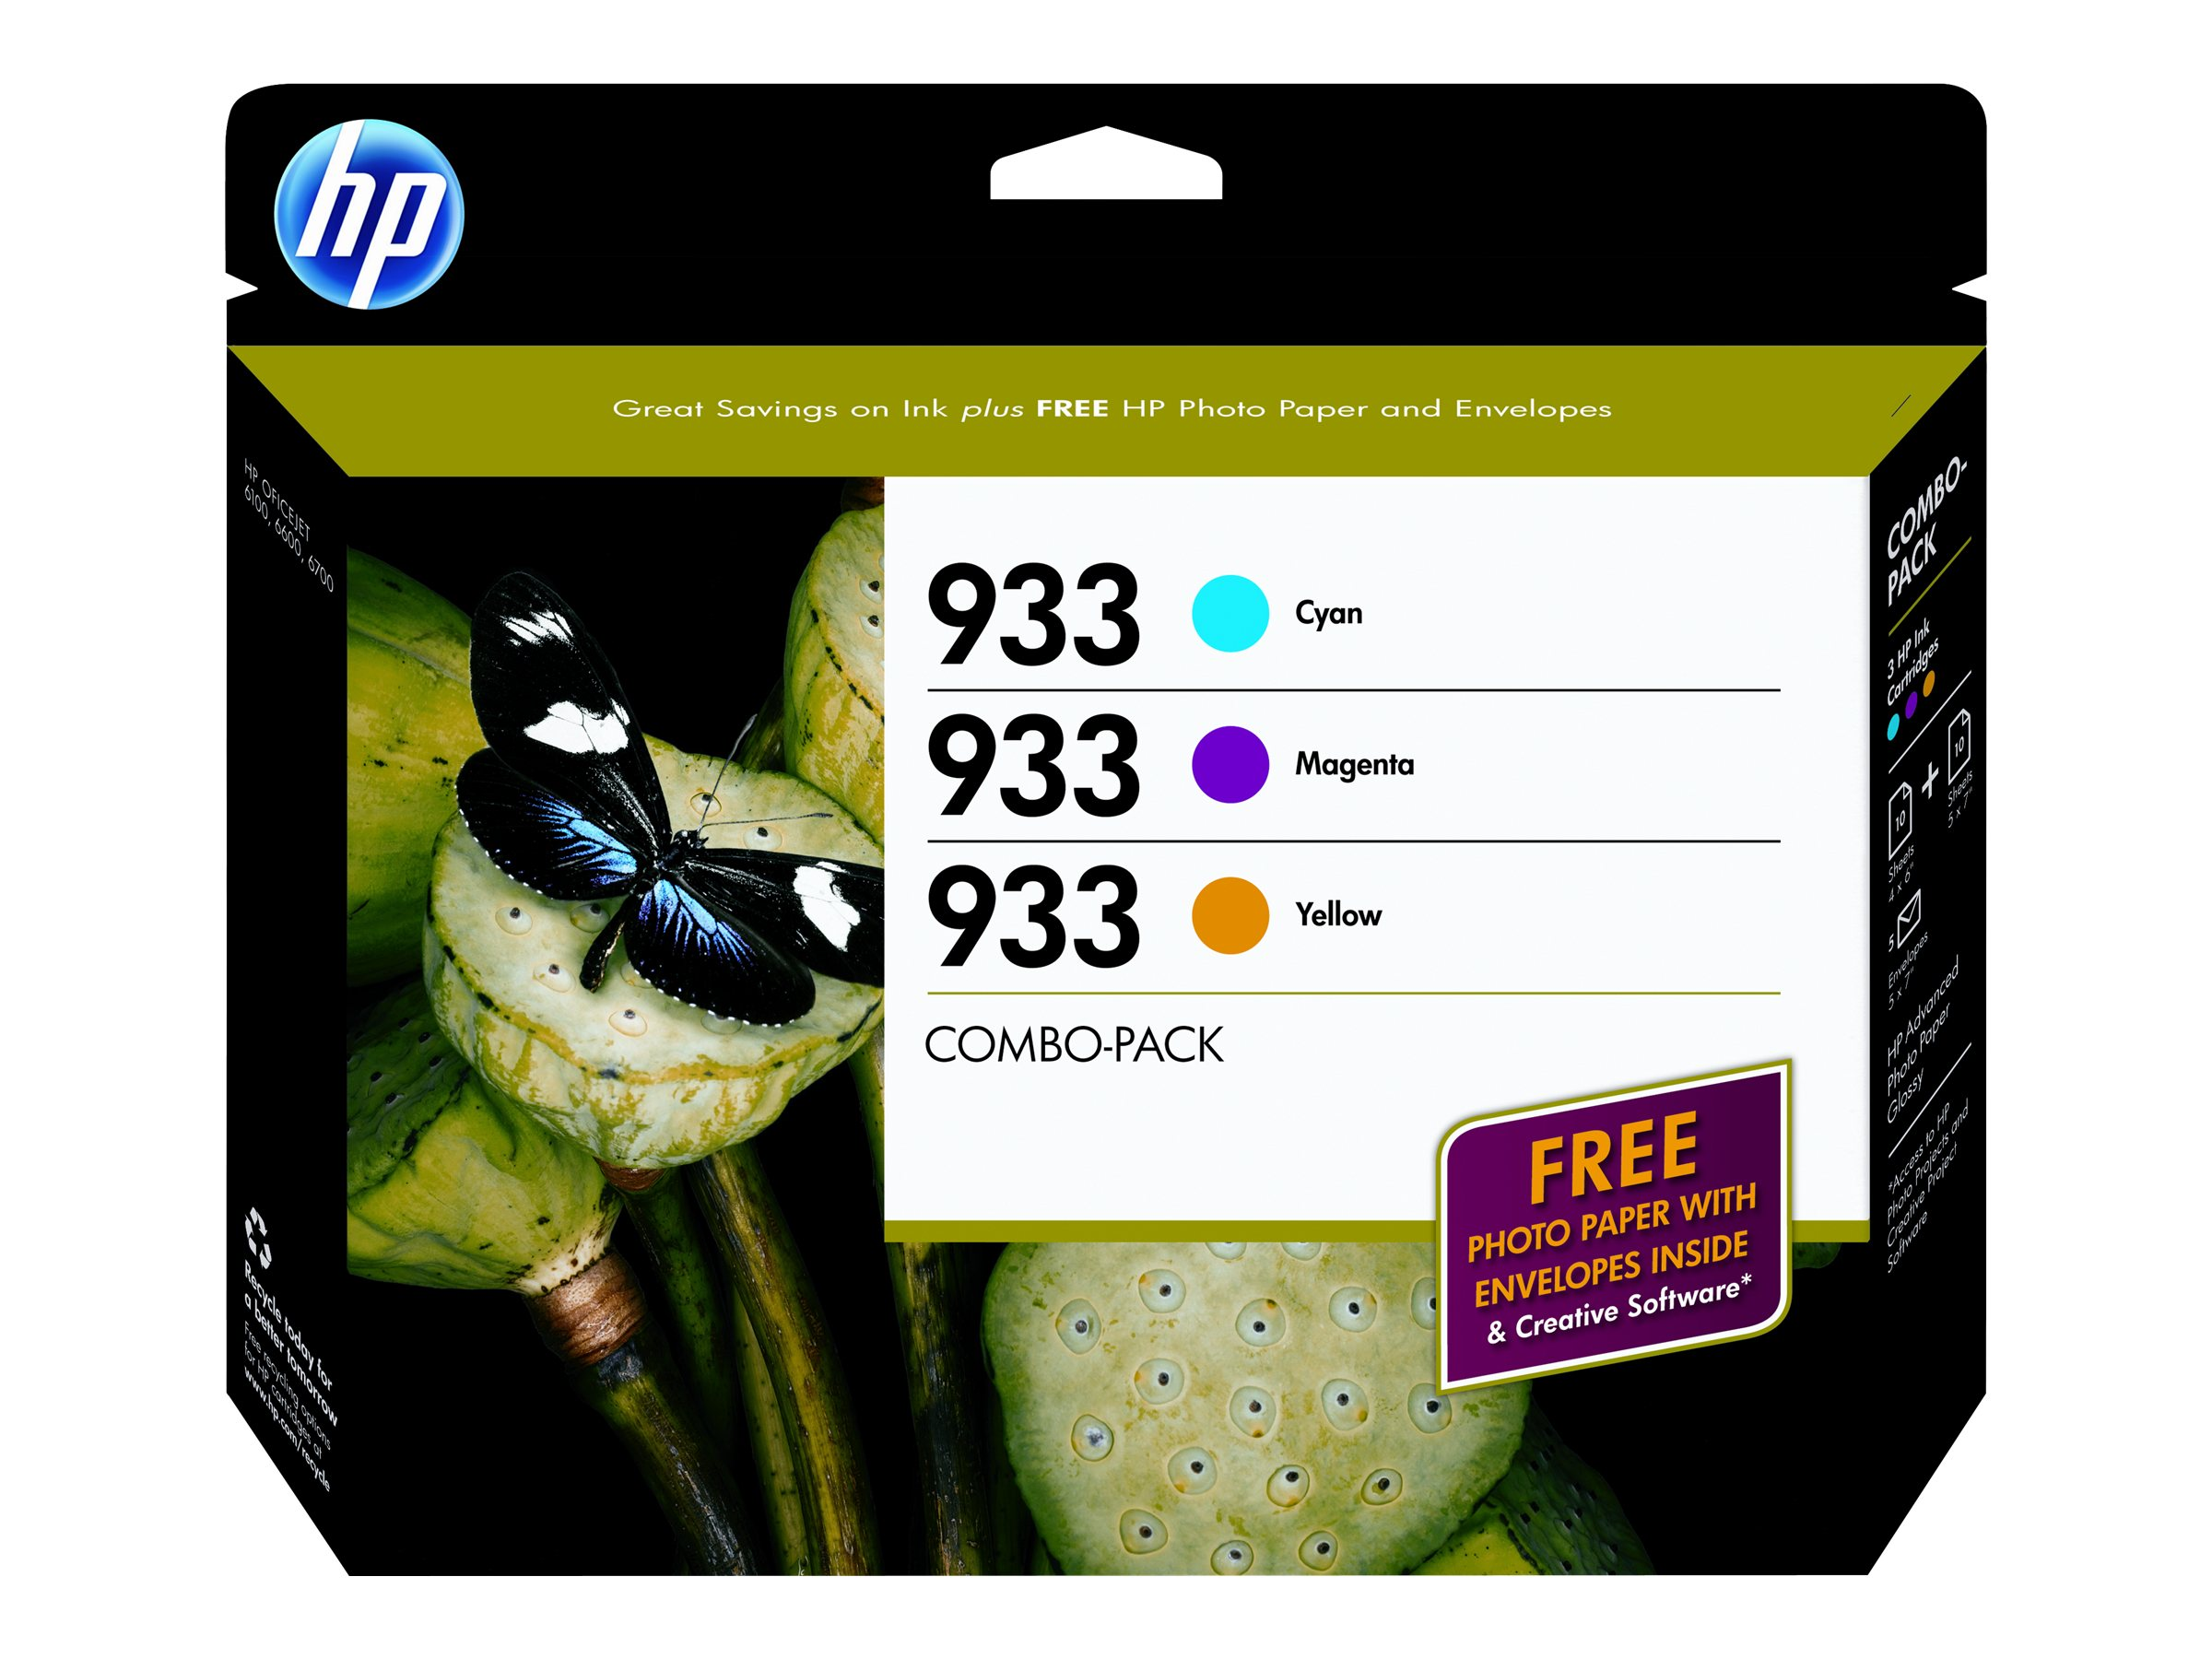 HP 933 (B3B32FN) 3-pack Cyan Magenta Yellow Original Ink Cartridges w  Photo Paper, B3B32FN#140, 14611304, Ink Cartridges & Ink Refill Kits